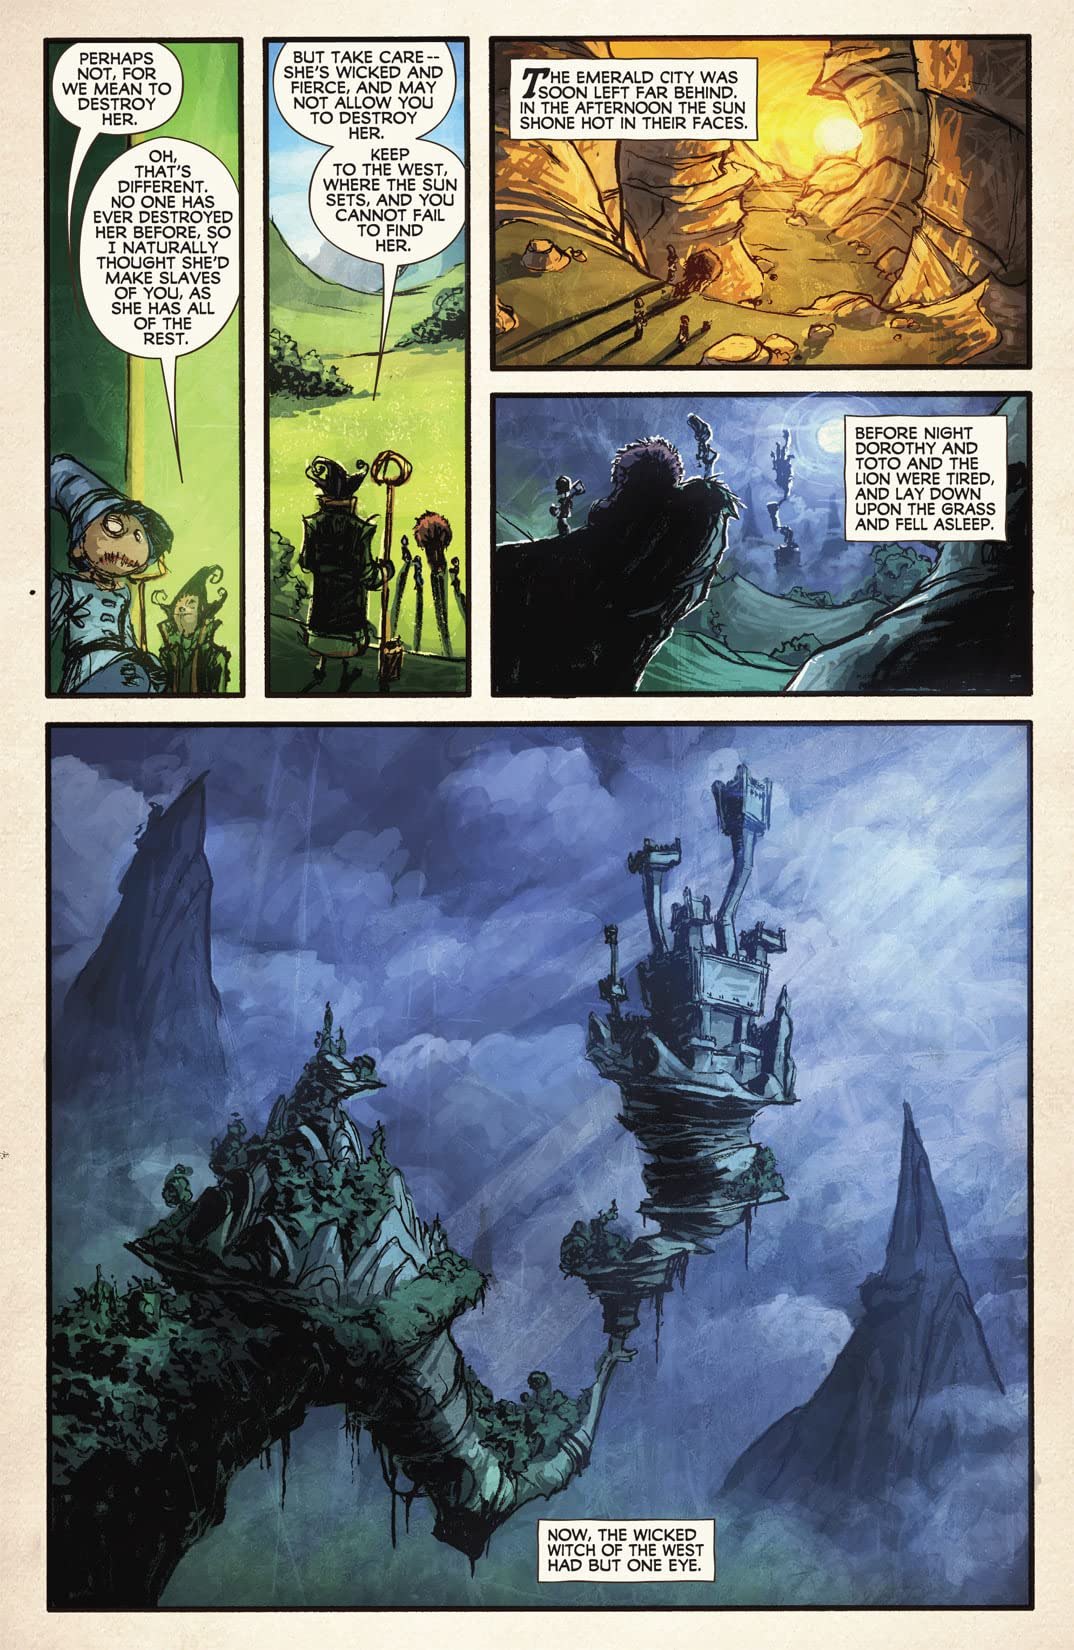 The Wonderful Wizard of Oz #5 (of 8)